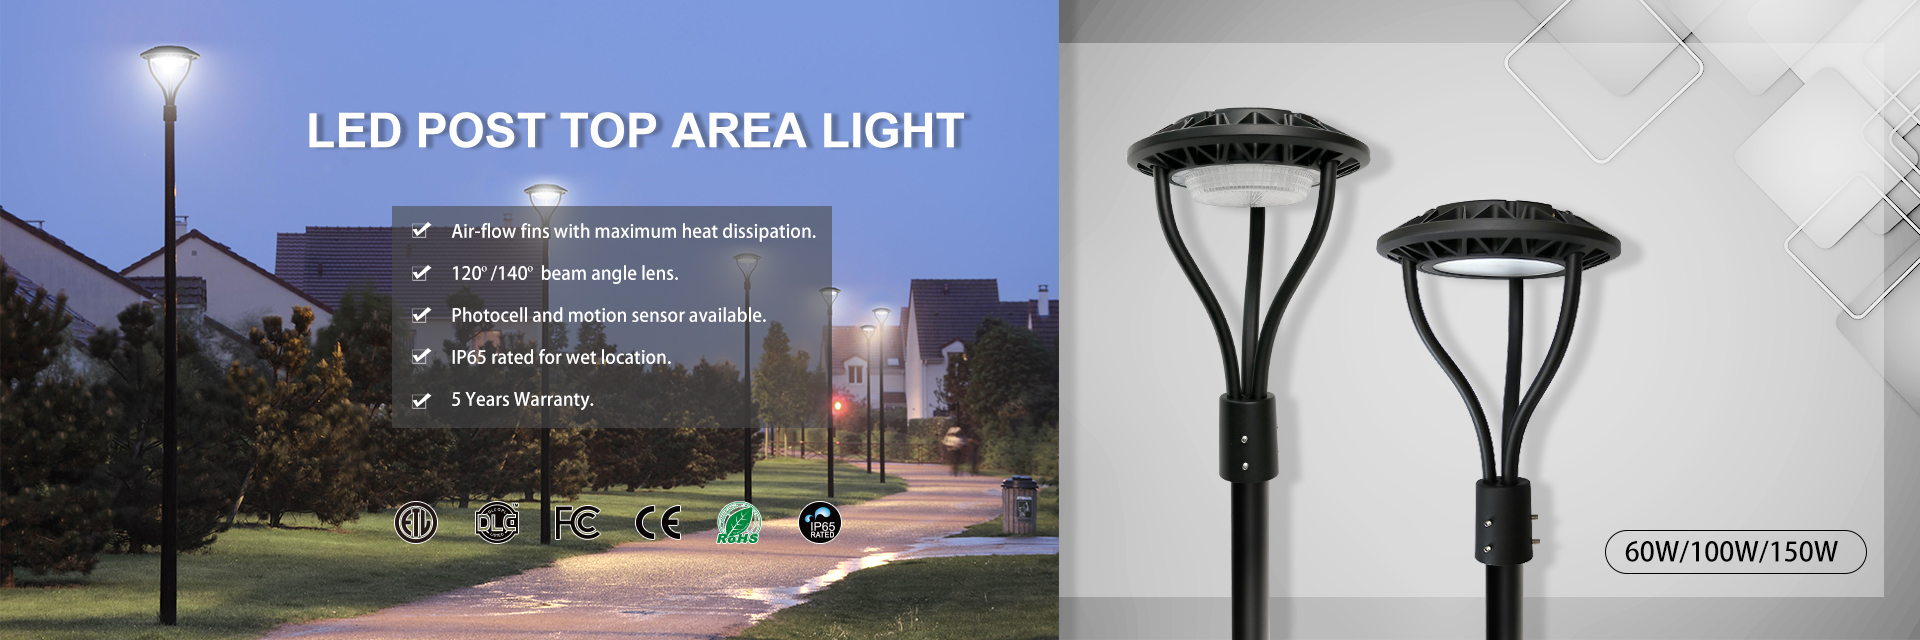 LED Post Top Area Light